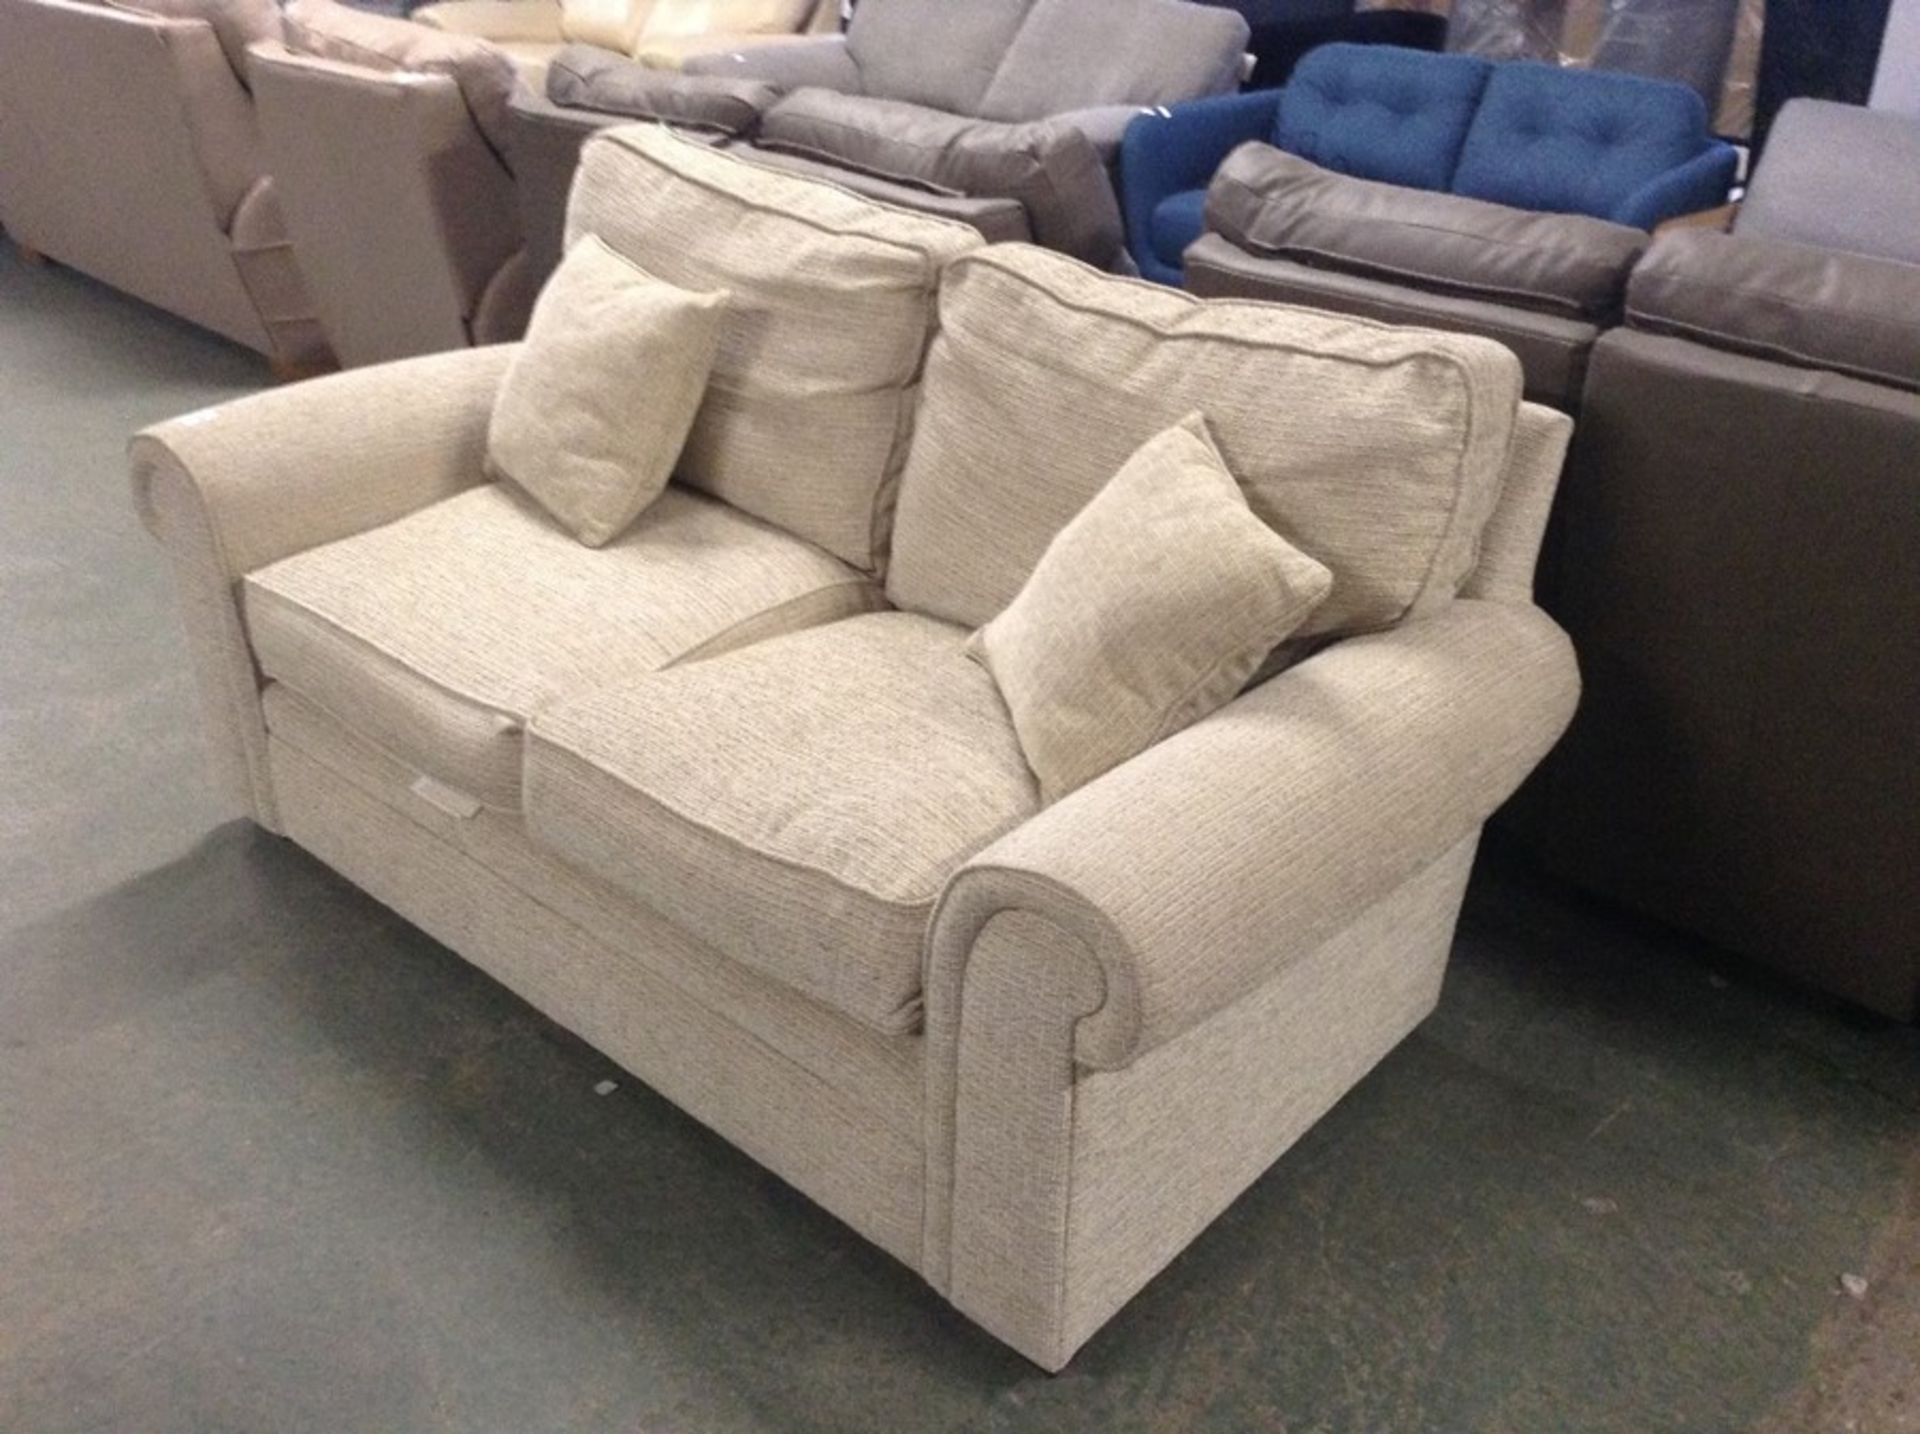 BISCUIT 2 SEATER SOFA TR002161 W00901633